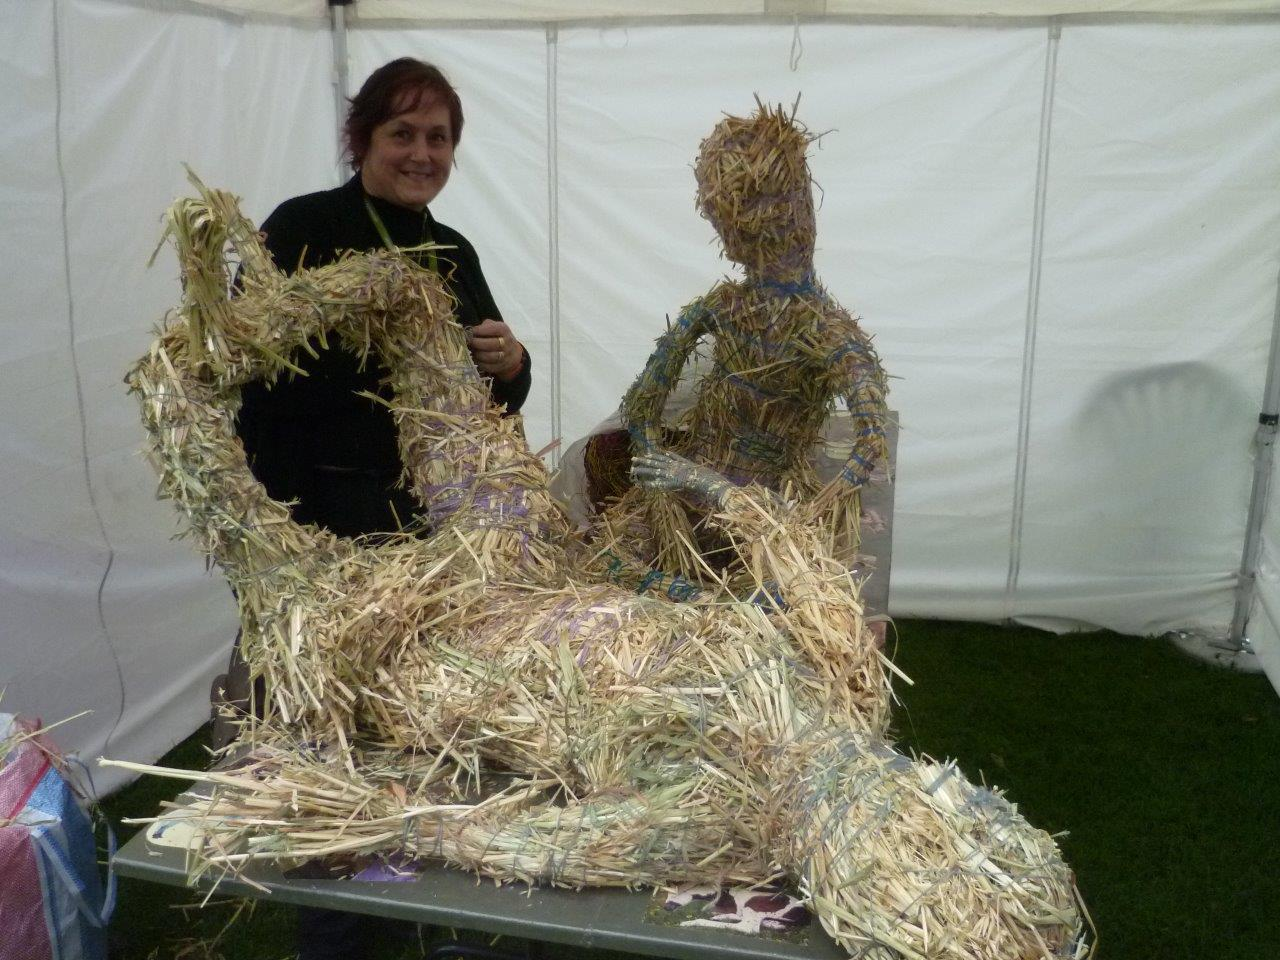 Bronwyn with grass figures